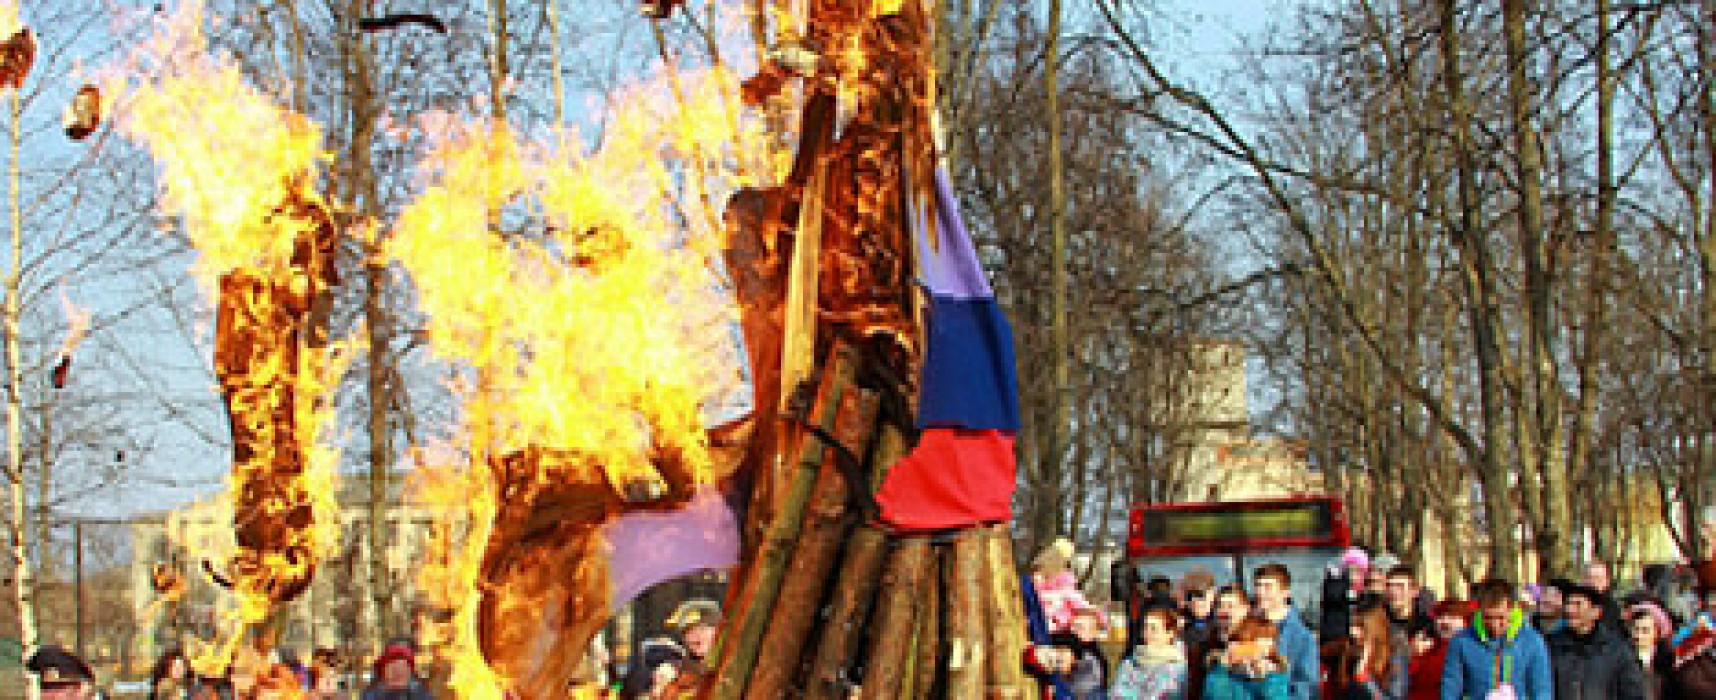 Fake: Russian Flag Burned in Belarus